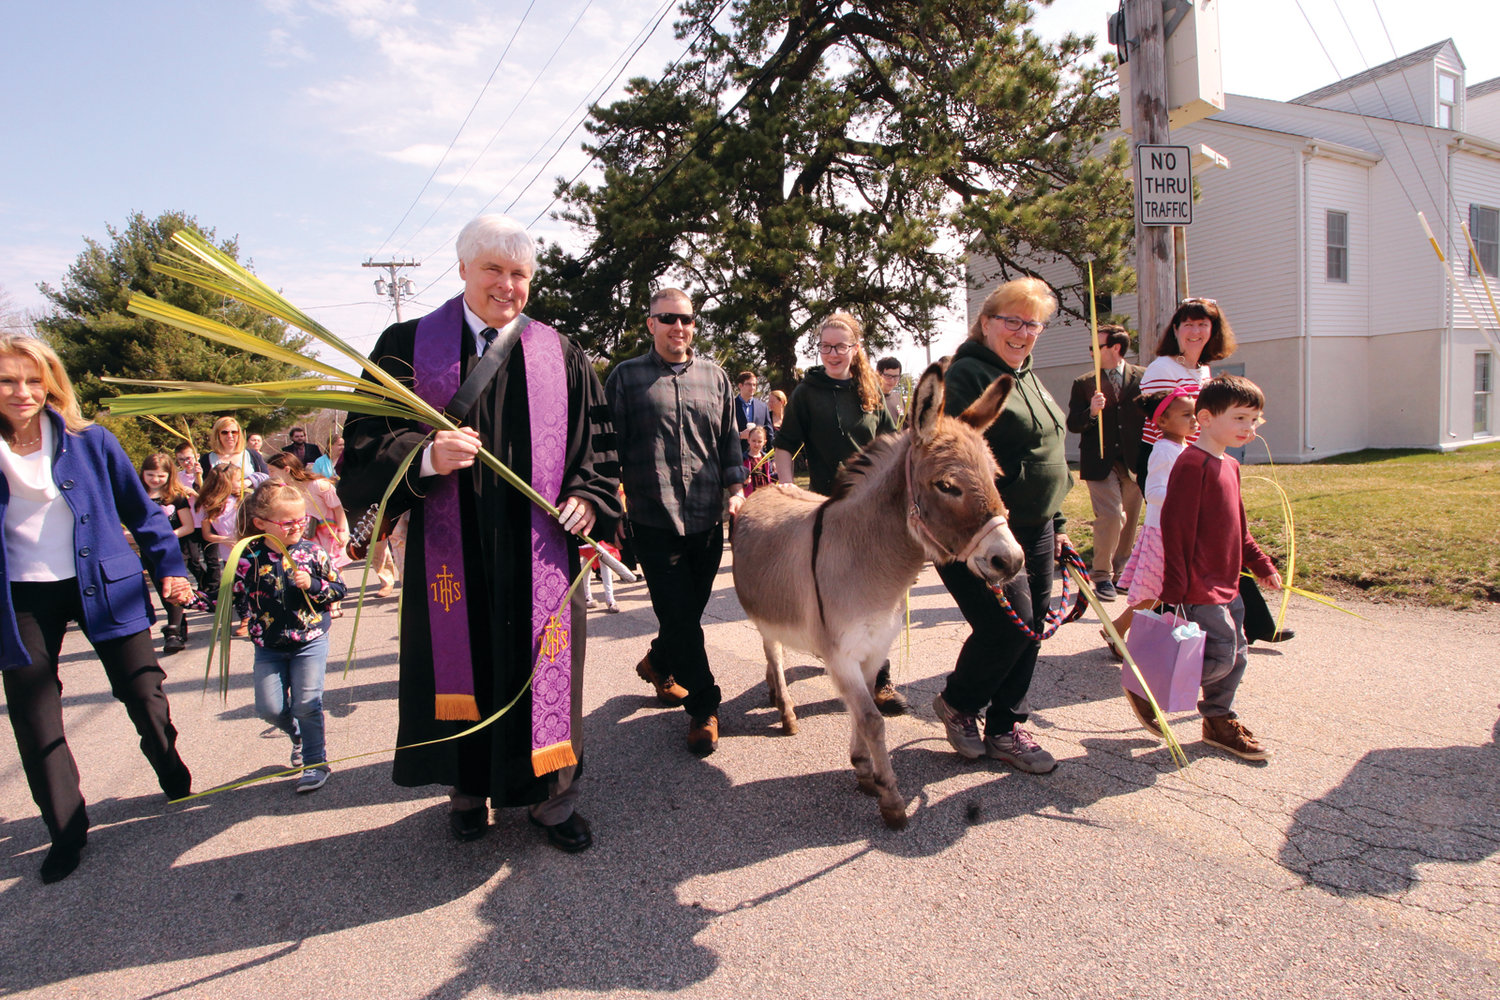 TAKING THE LEAD: With Hannah the Jerusalem donkey and Pastor Stephen Clark in the lead, Greenwood Community Church, Presbyterian parishioners circled the church as part of Palm Sunday services.